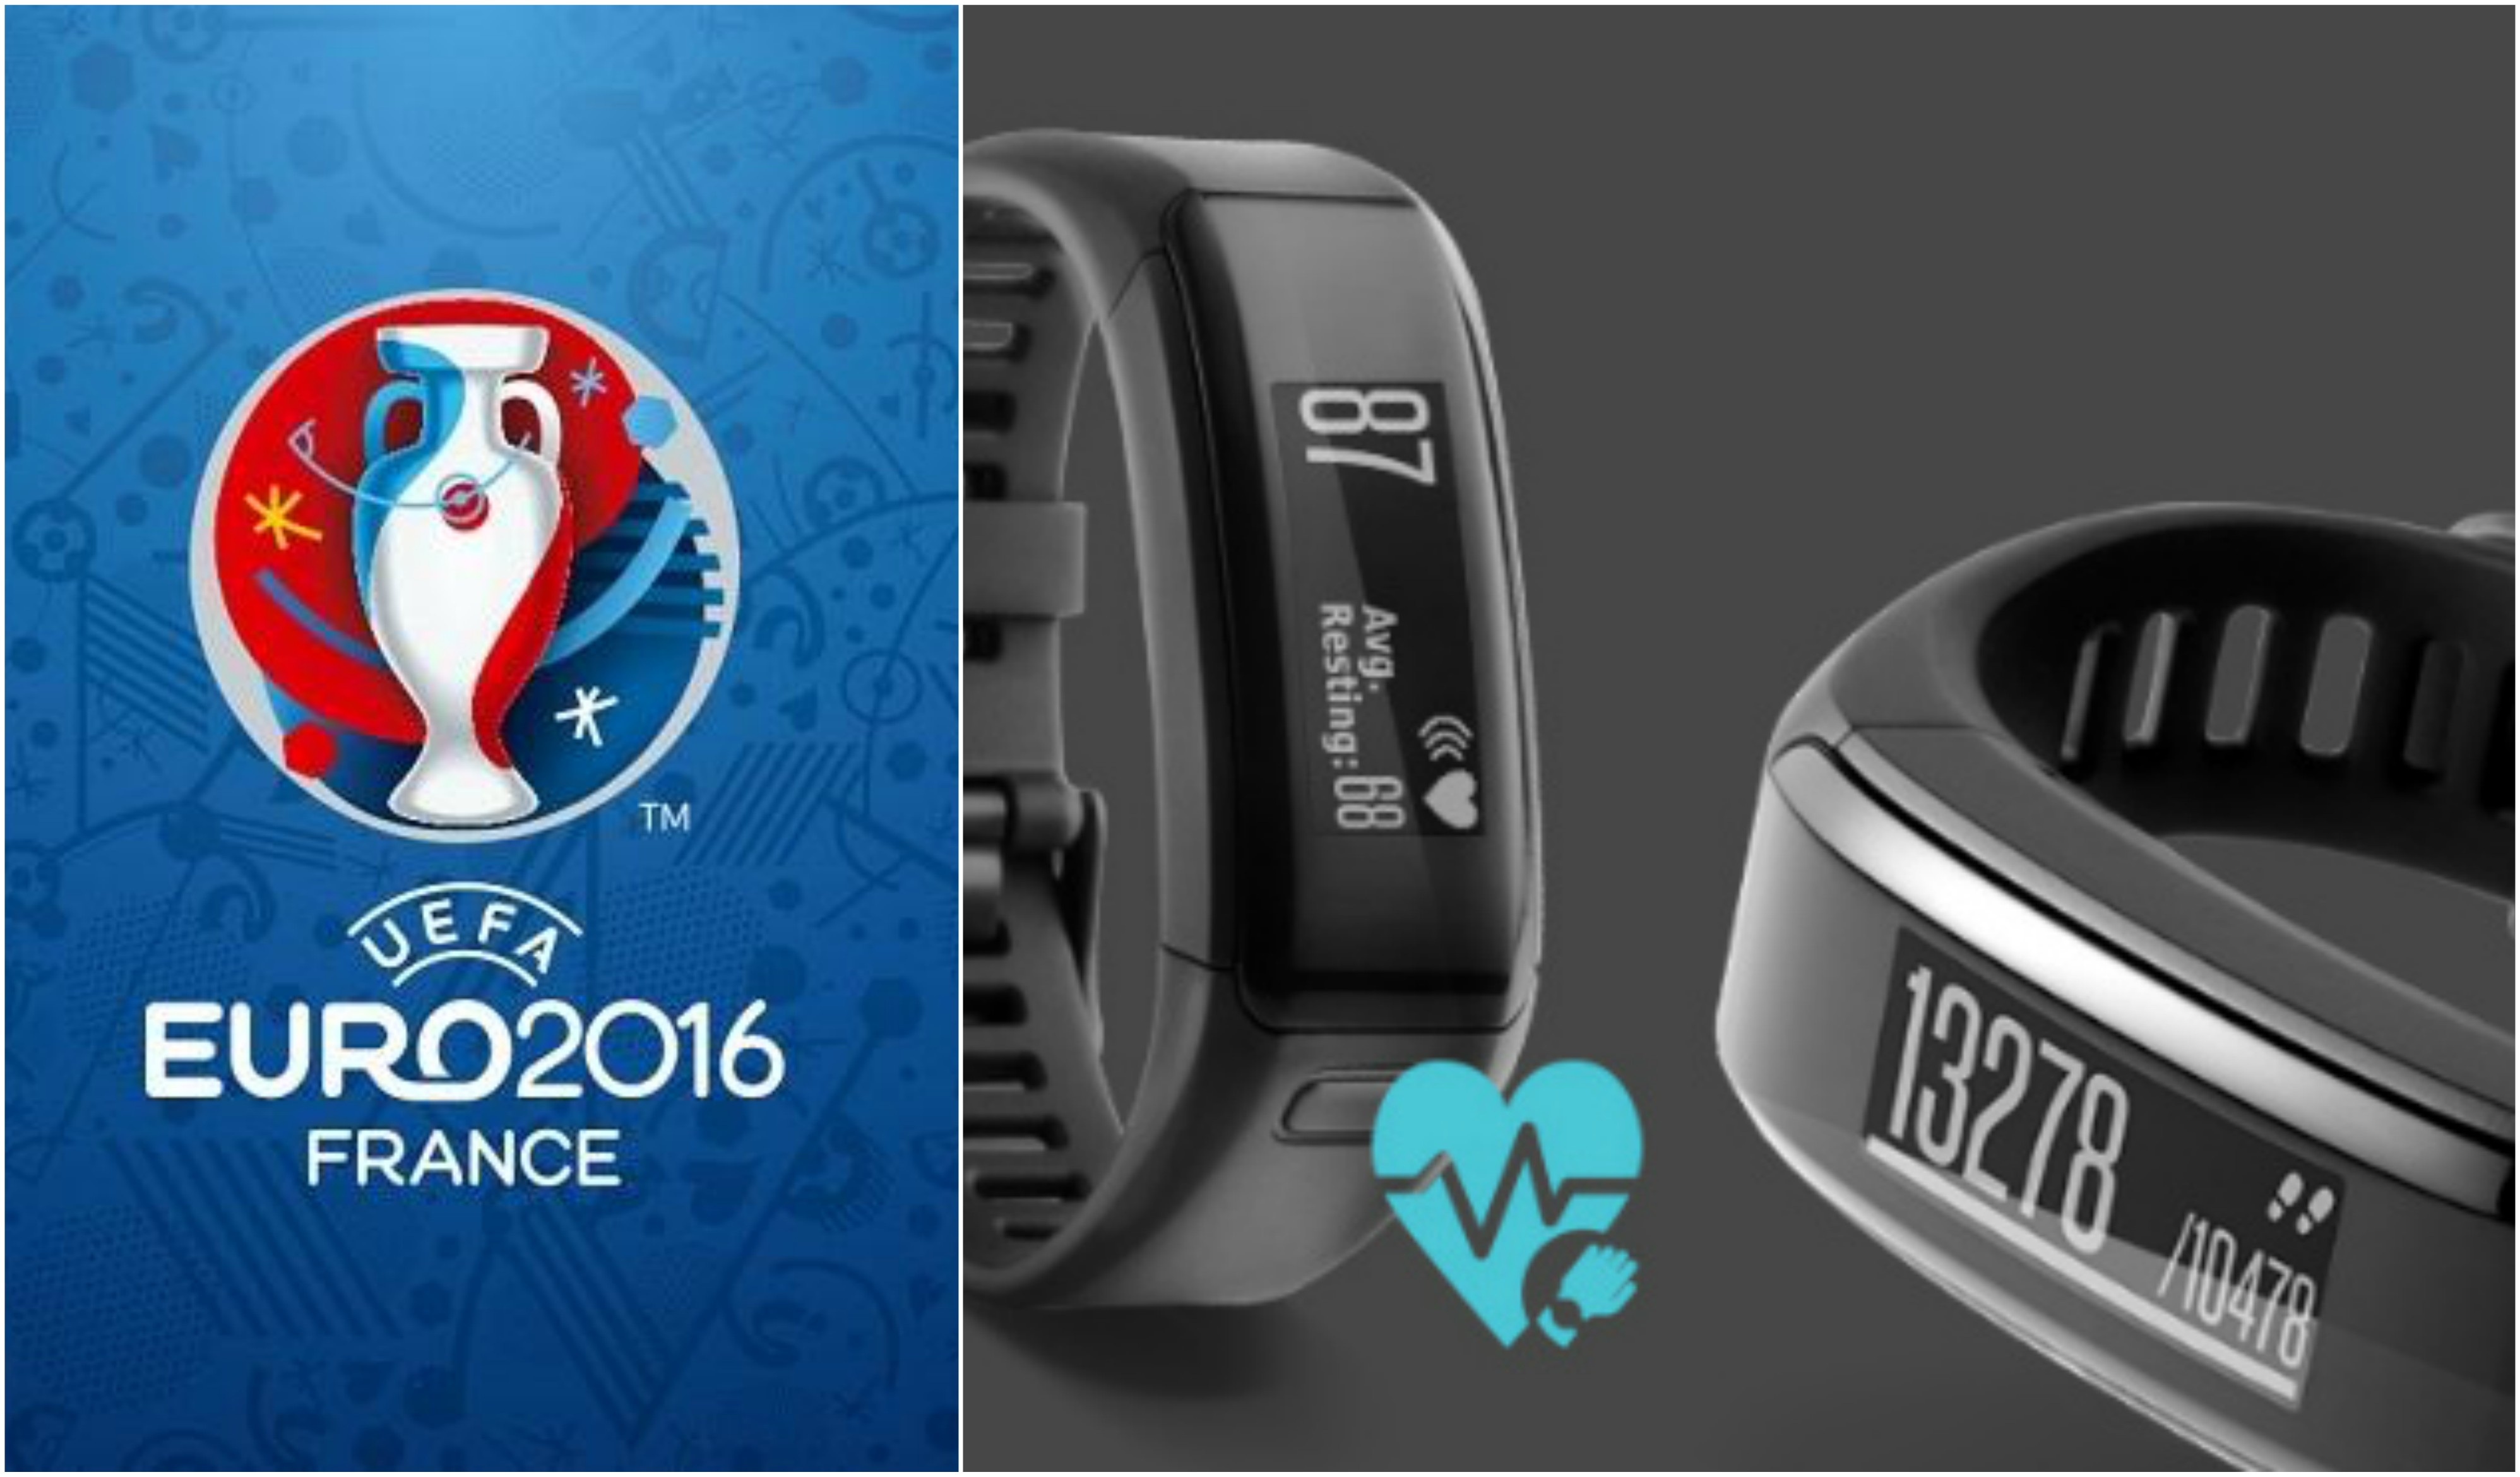 Enhance Euro 2016 with wearable tech